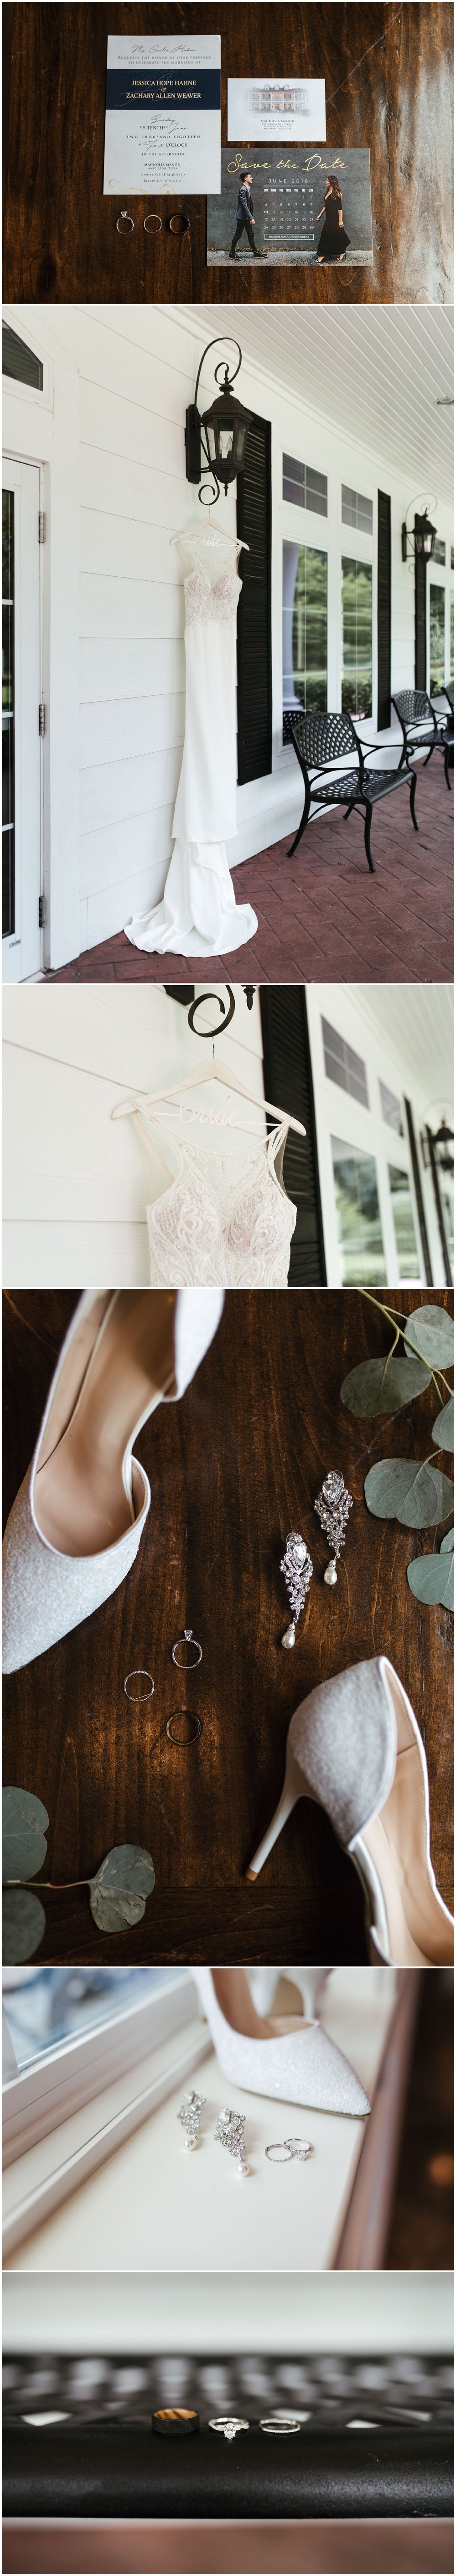 Magnolia Manor Wedding | Fort Worth Wedding Photographer | Dallas Wedding Photographer |www.jordanmitchellphotography.com